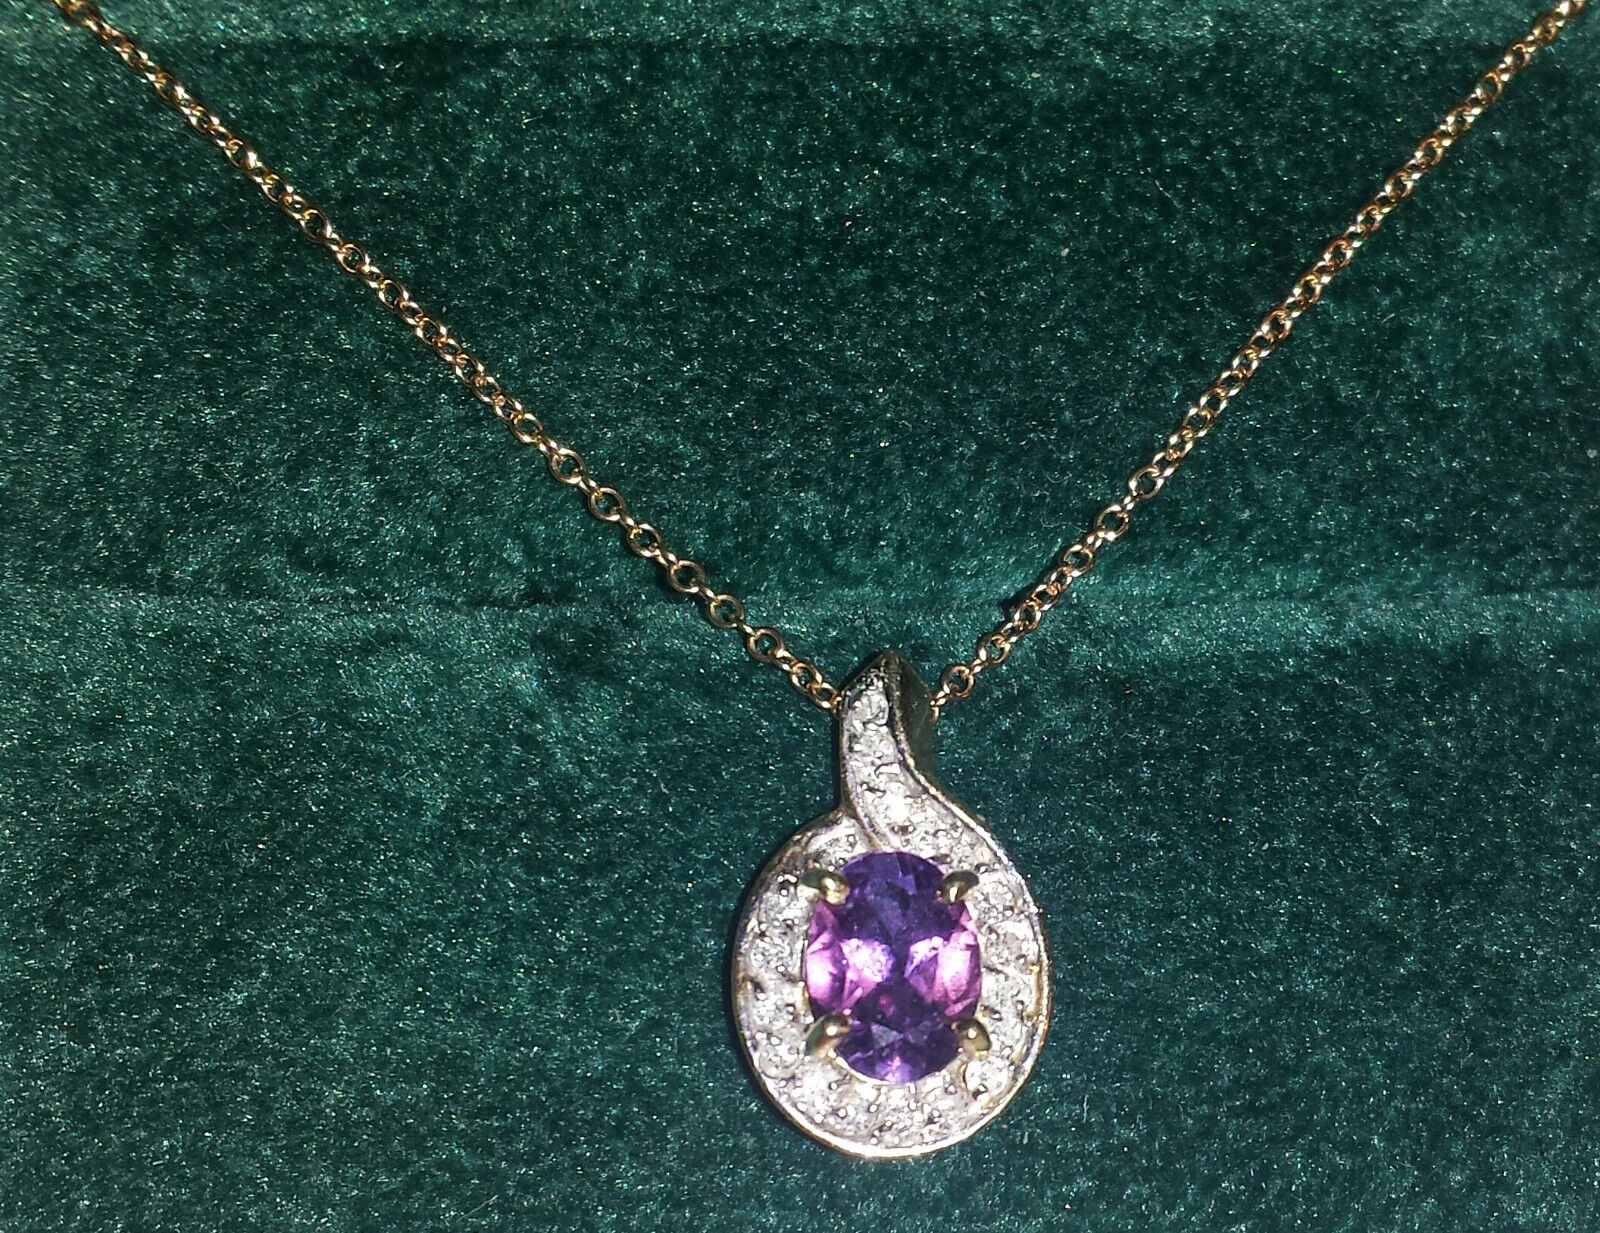 Genuine Amethyst with 20 Diamonds Pendant, 2.4 g of solid 14K gold